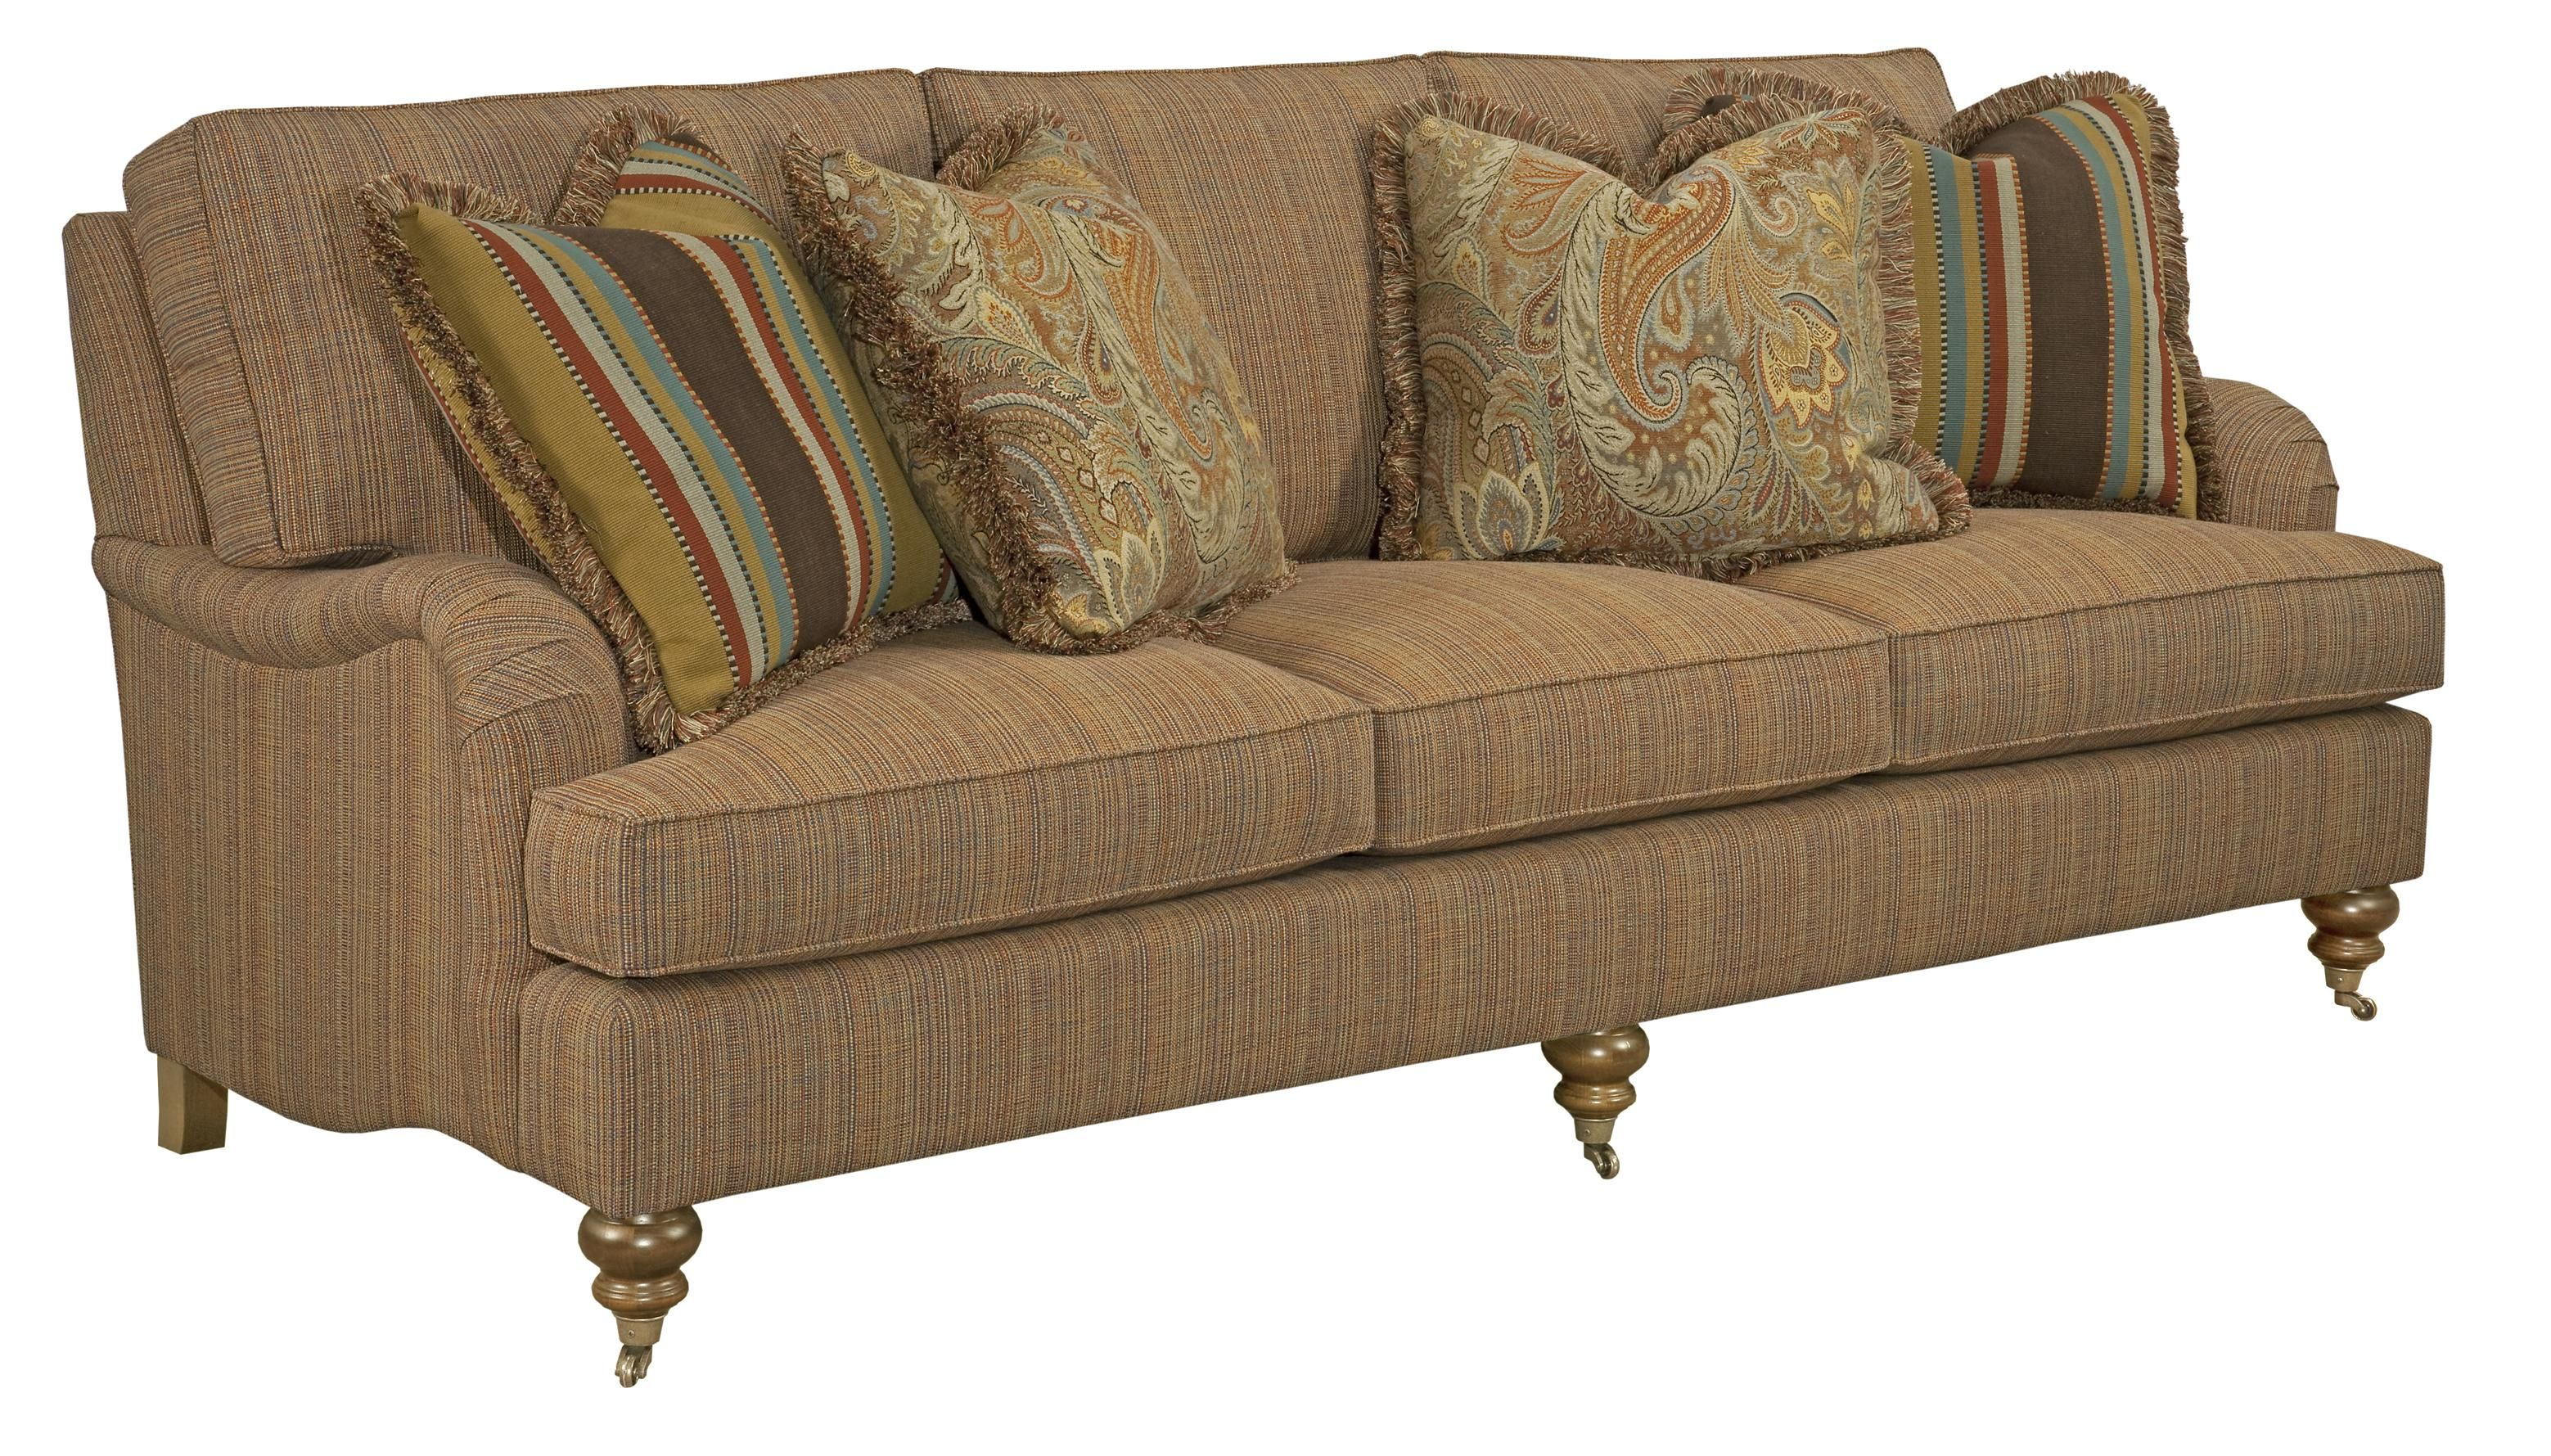 Greenwich Traditional Sofa With English Arms And Turned Legs By Kincaid Furniture Becker World